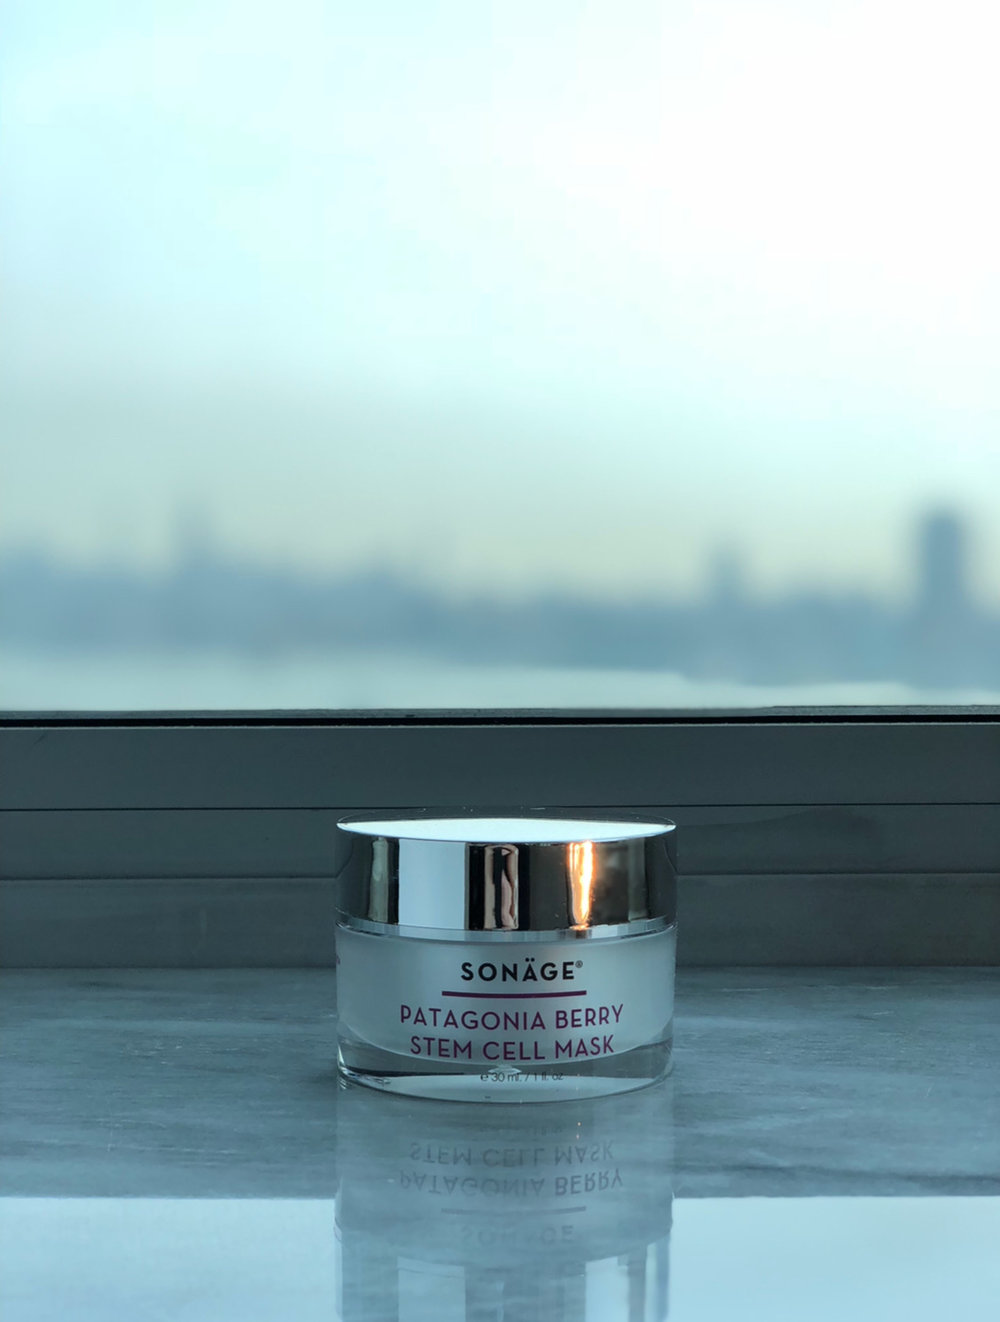 The Sonäge Patagonia Berry Stem Cell Mask